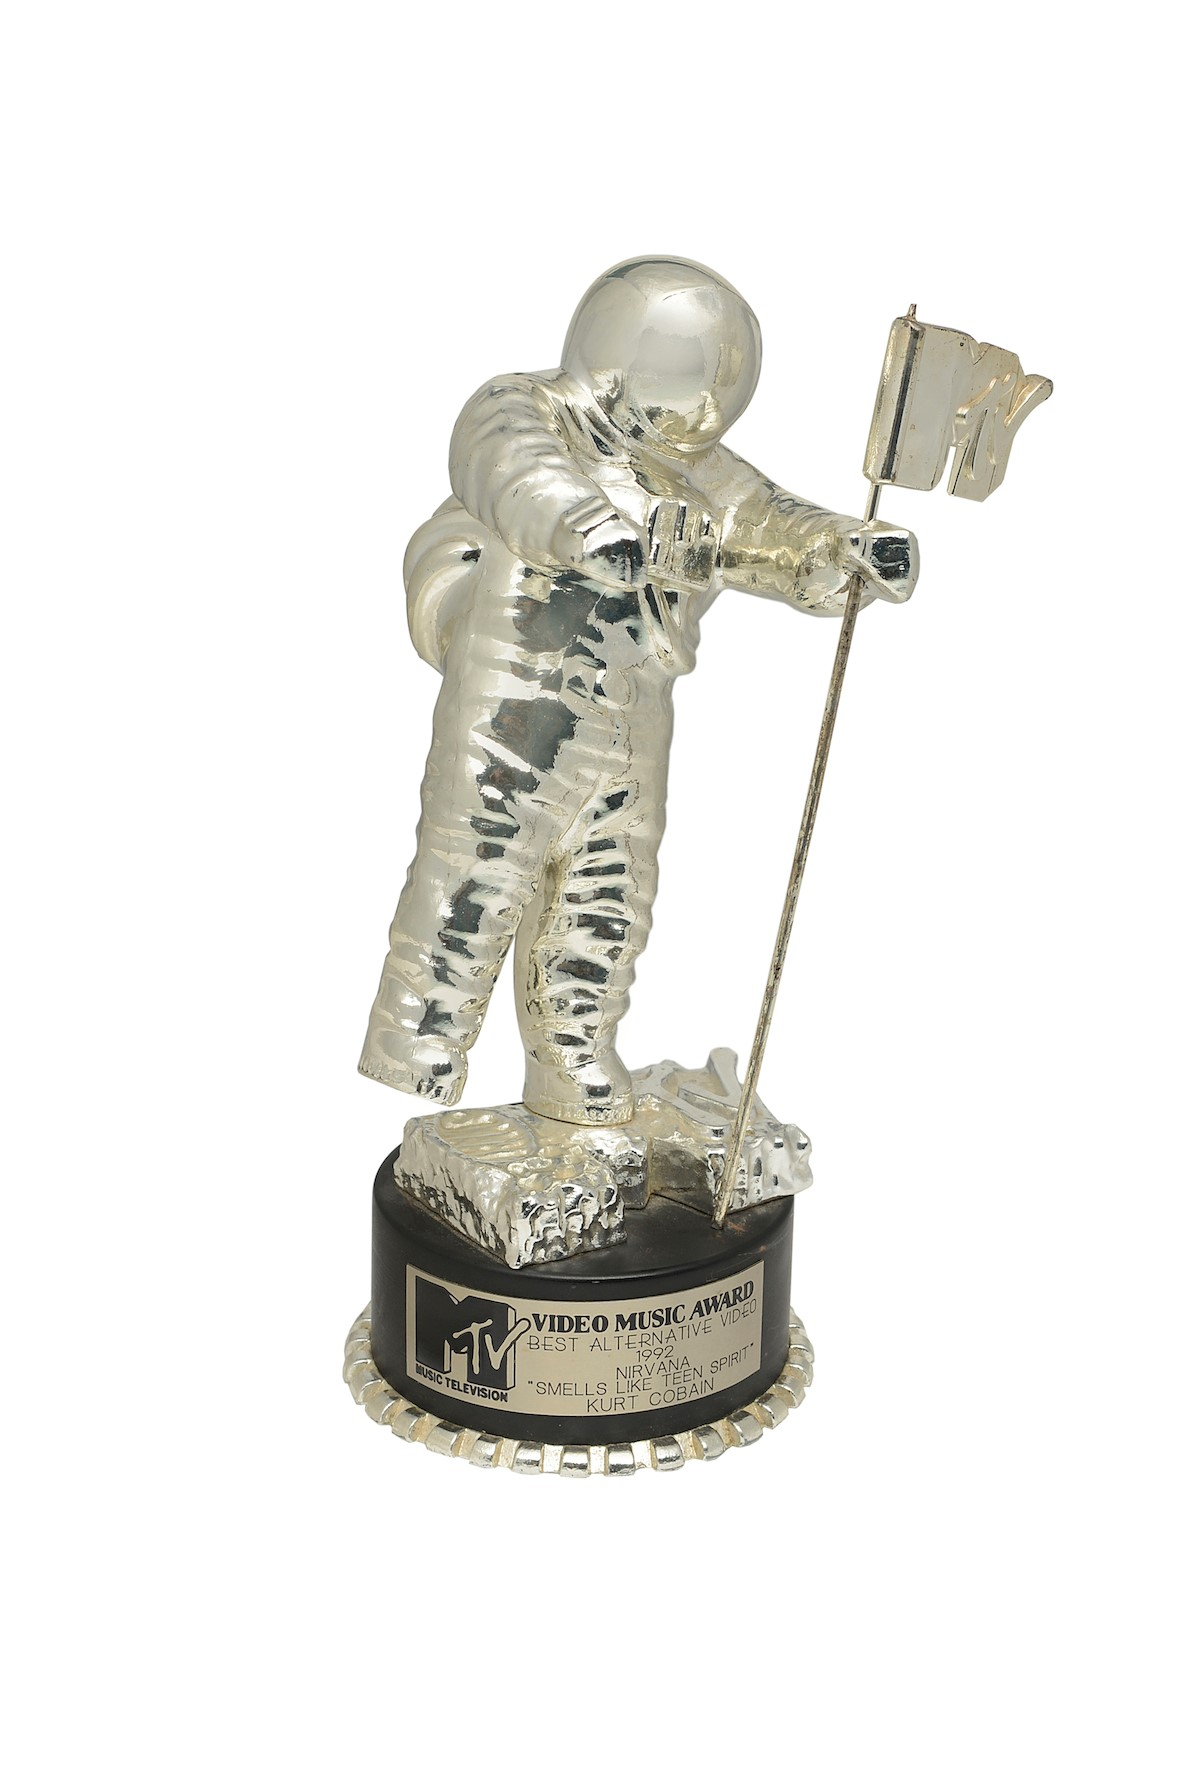 The MTV video award for Smells Like Teen Spirit